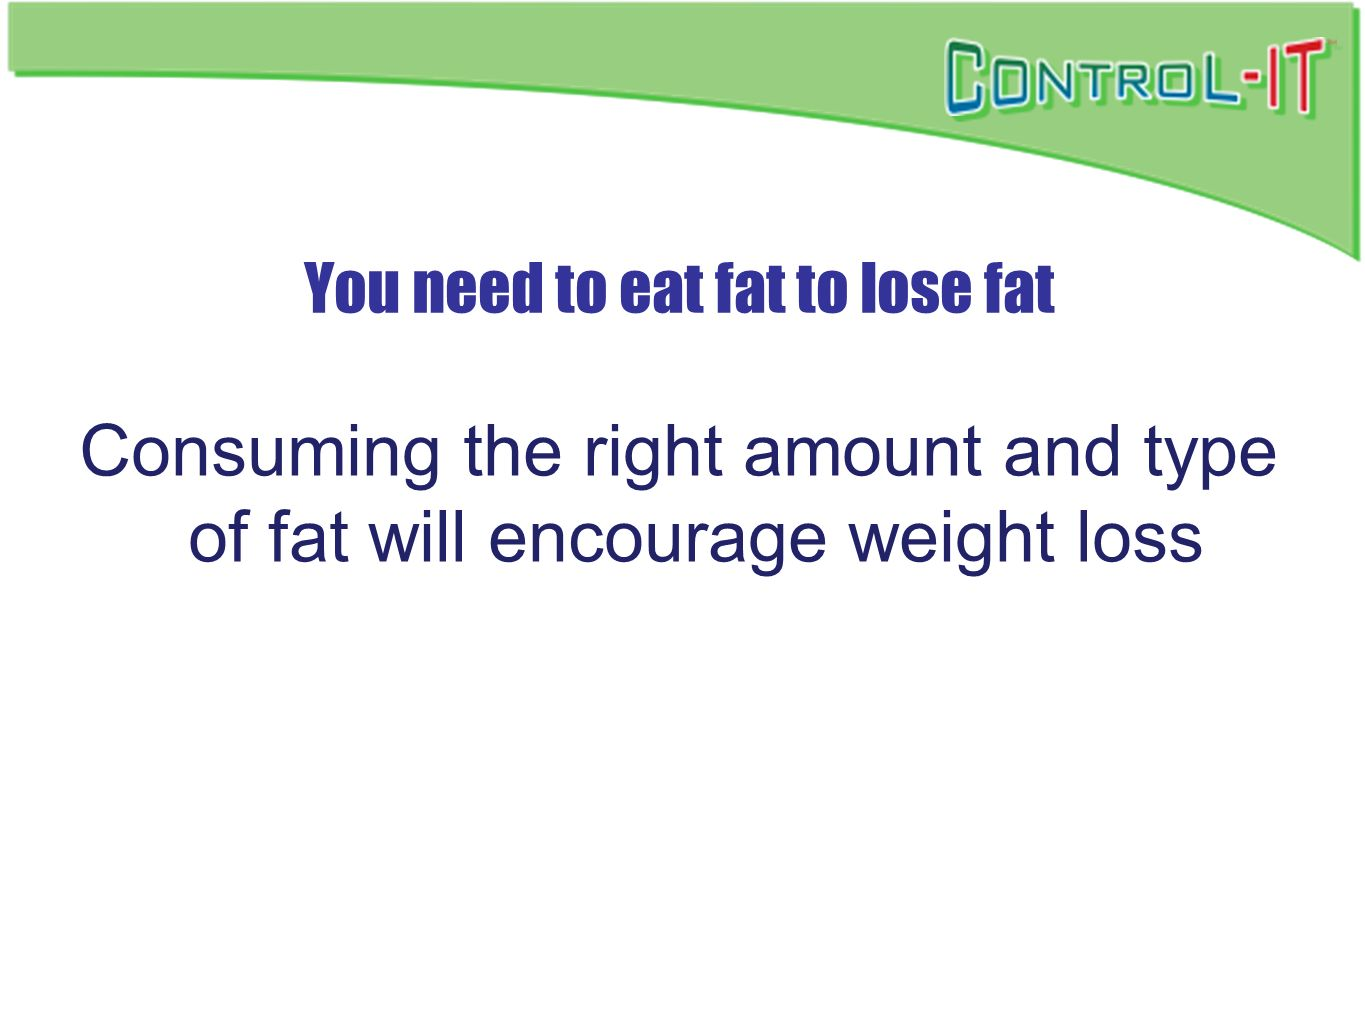 You need to eat fat to lose fat